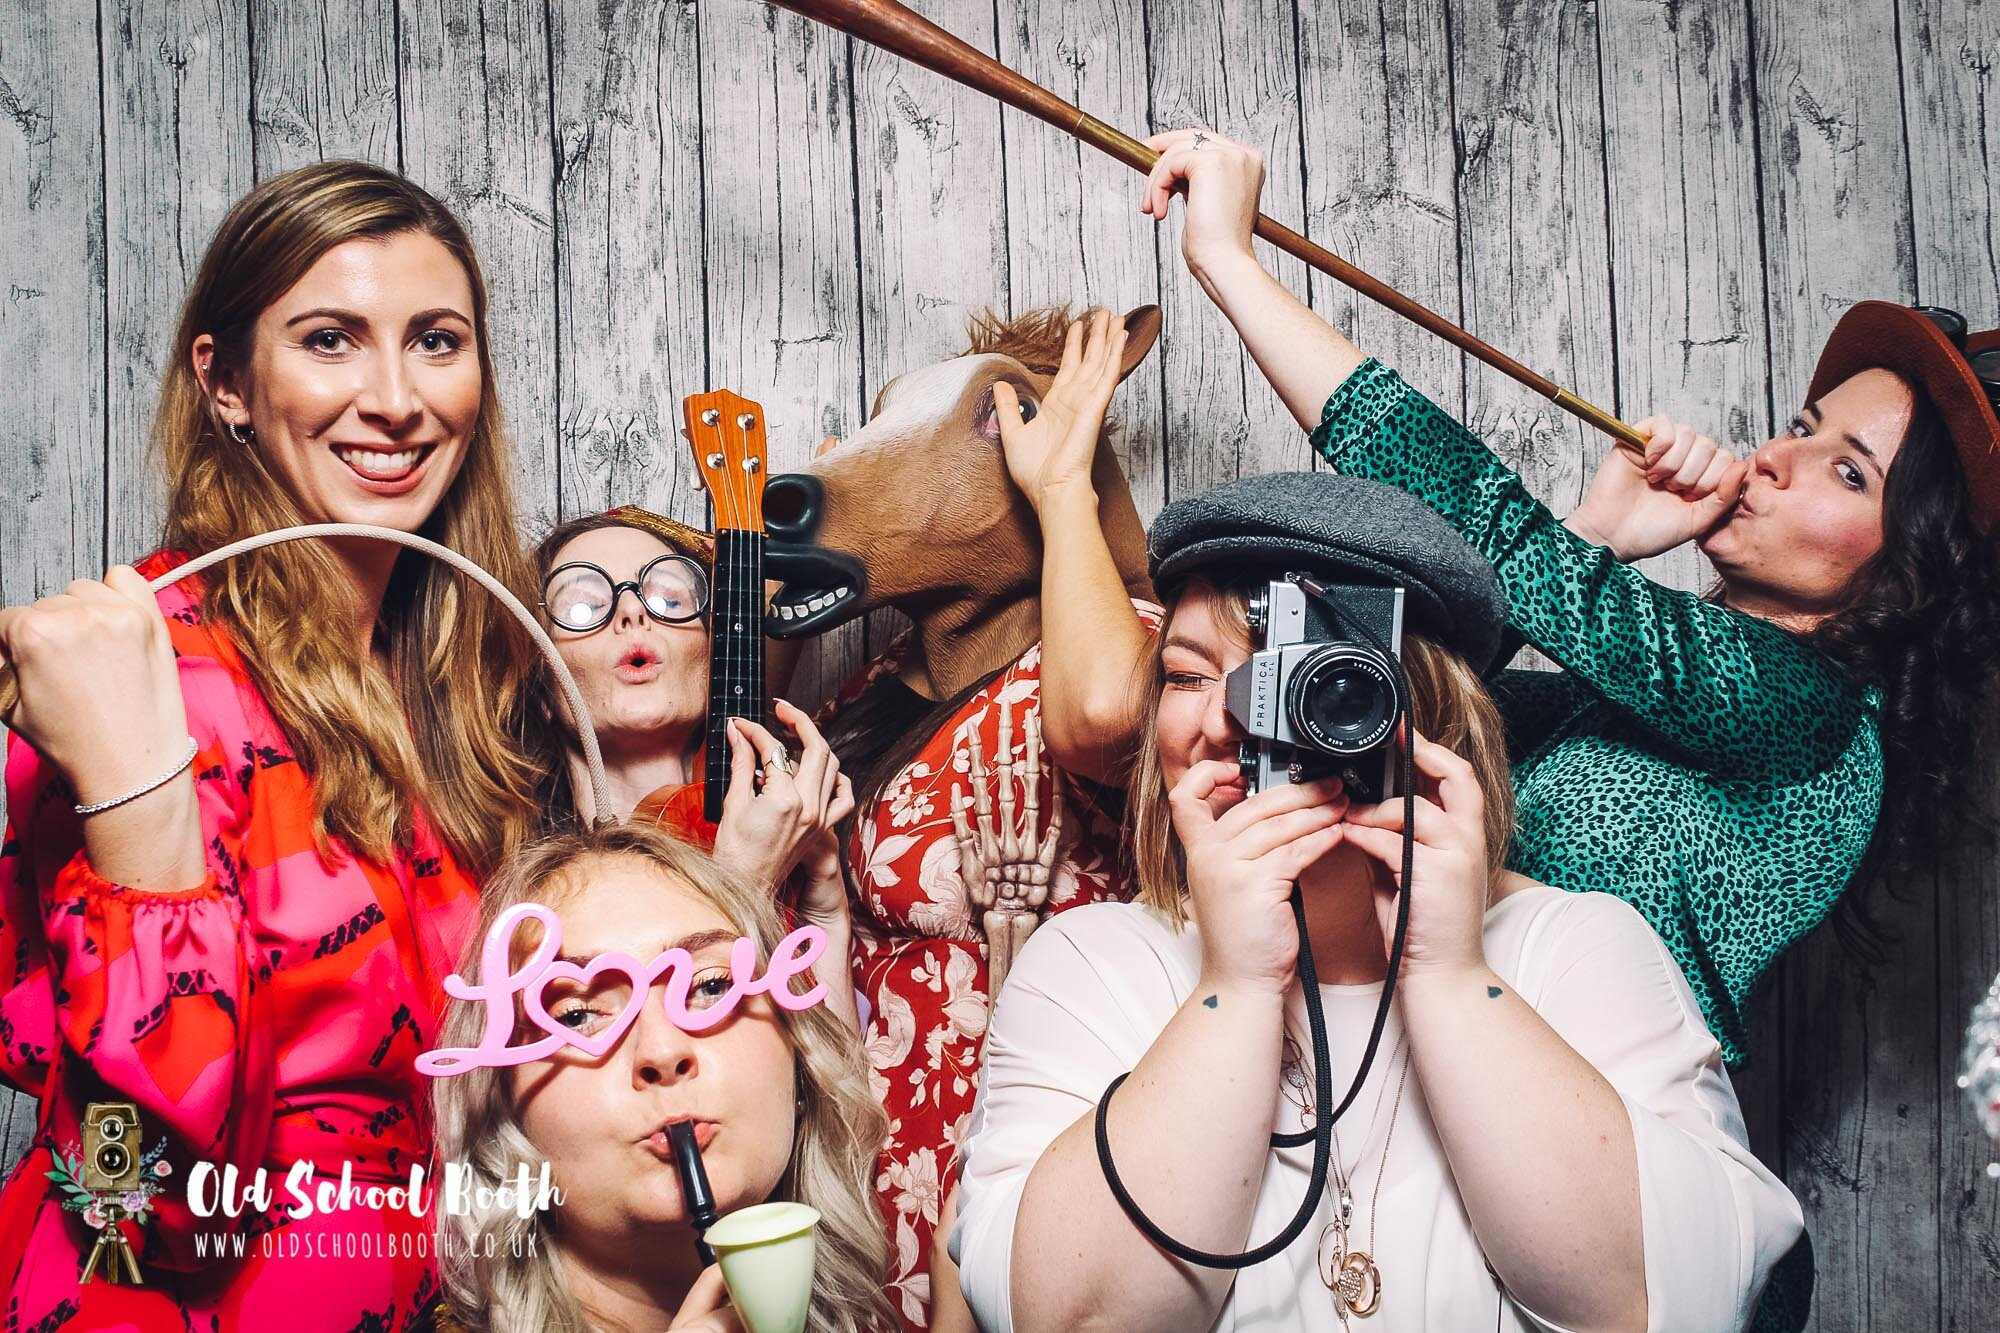 Open Air Vintage photo booth